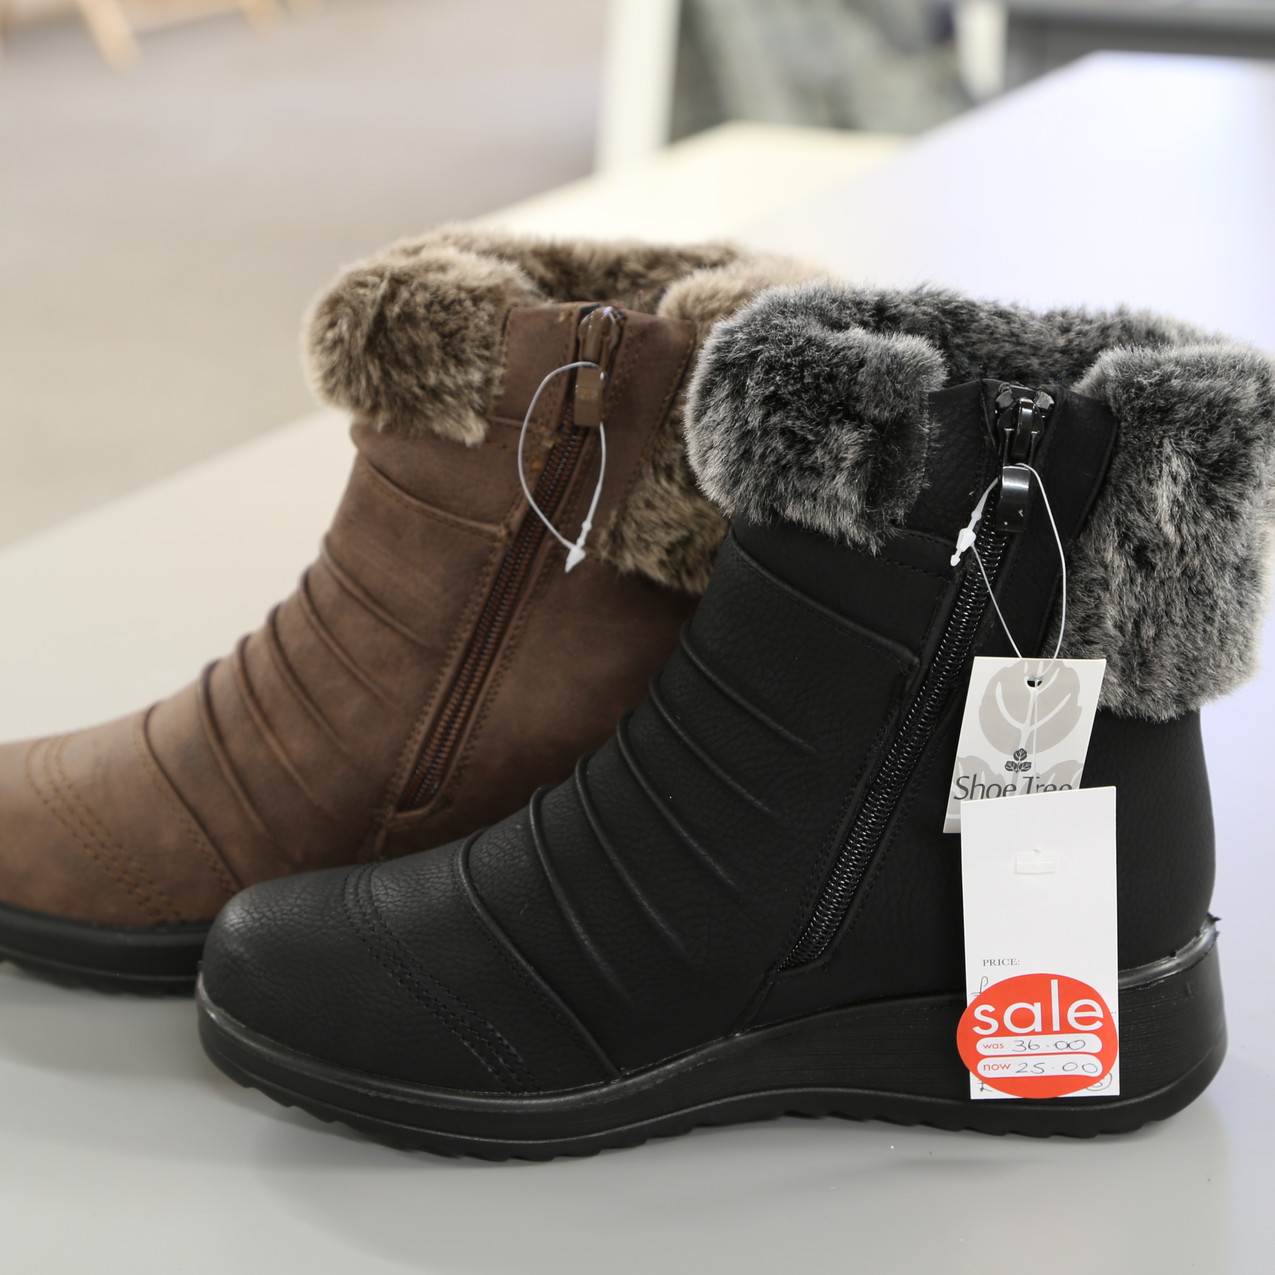 Winter boots from £36 to £25